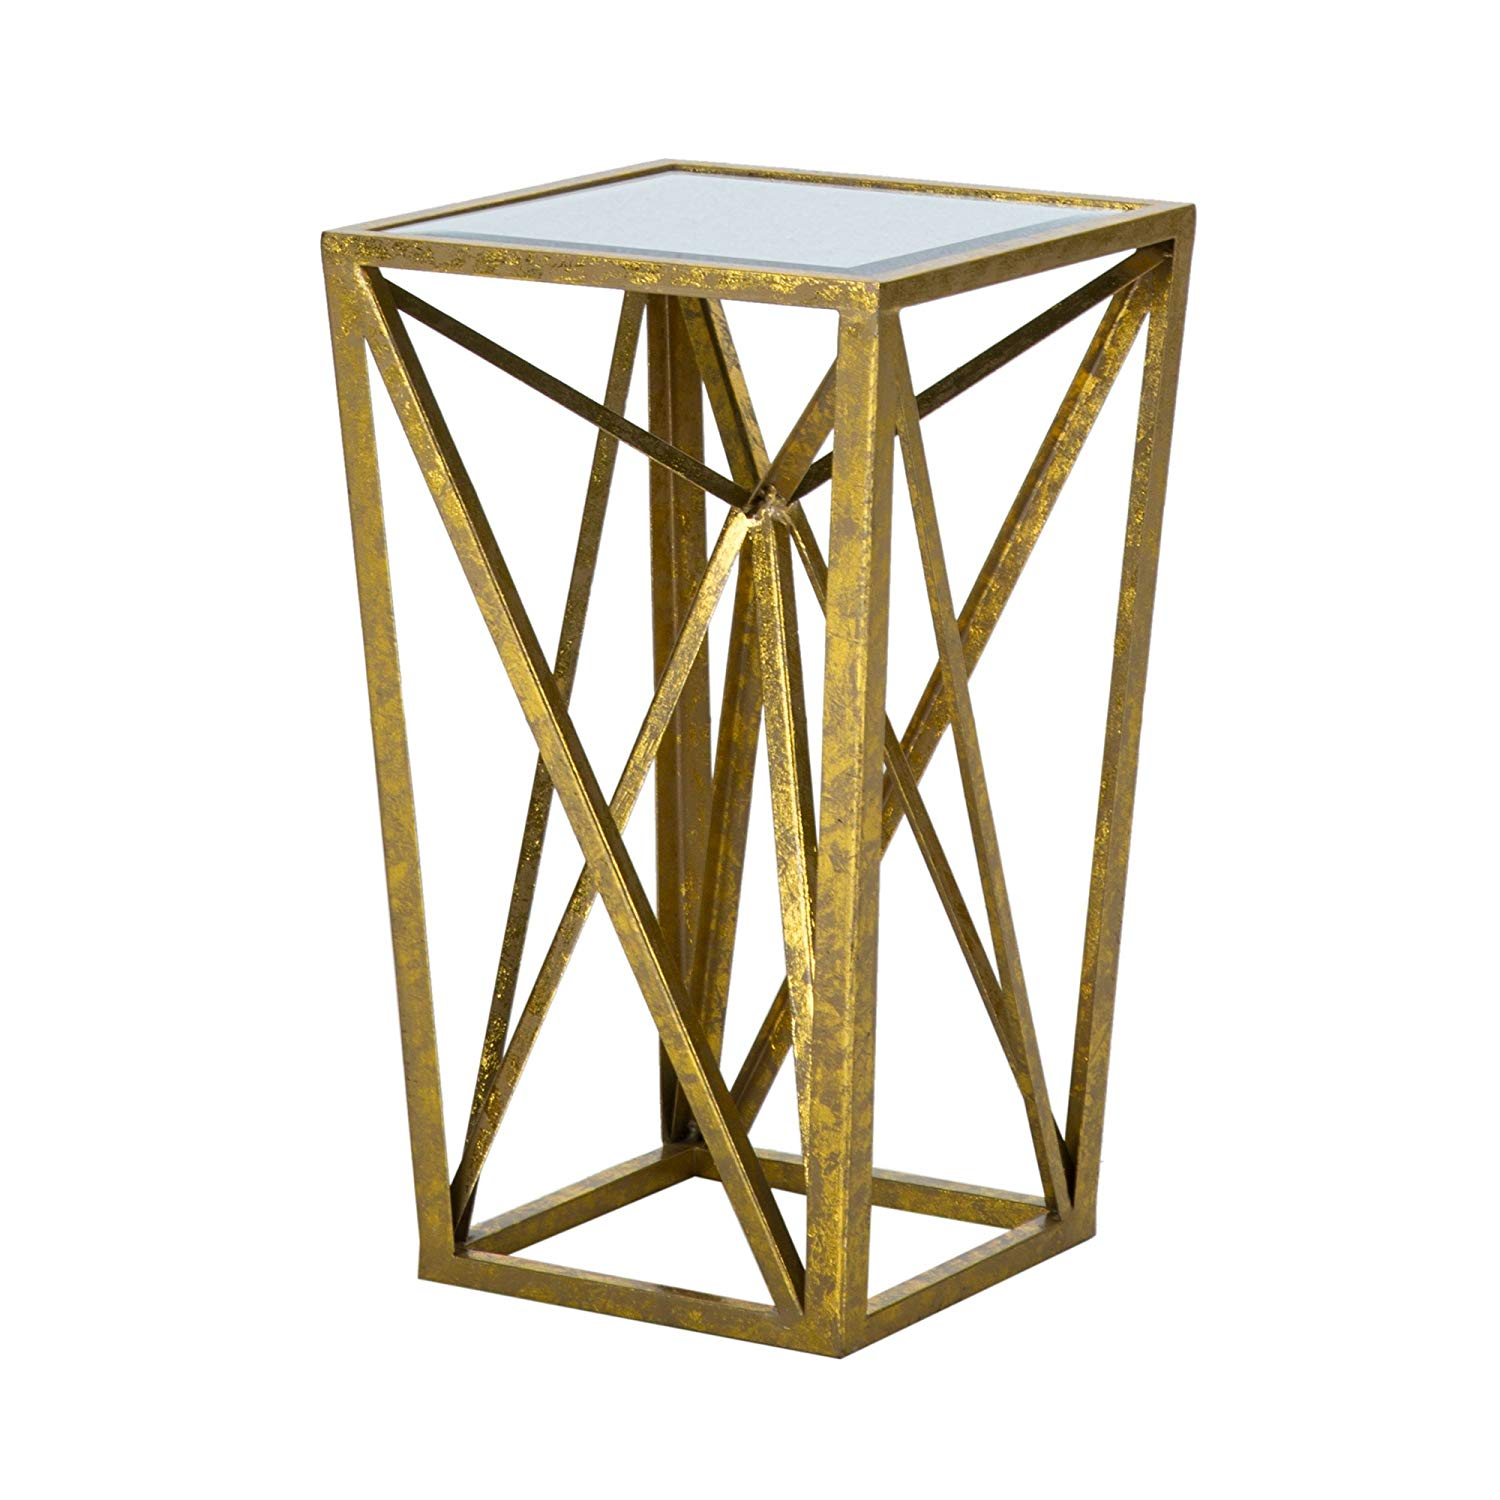 madison park zee accent tables mirror glass metal wood top table side gold angular design modern style end piece hollow round counter set unique cabinets pier lamps lawn furniture